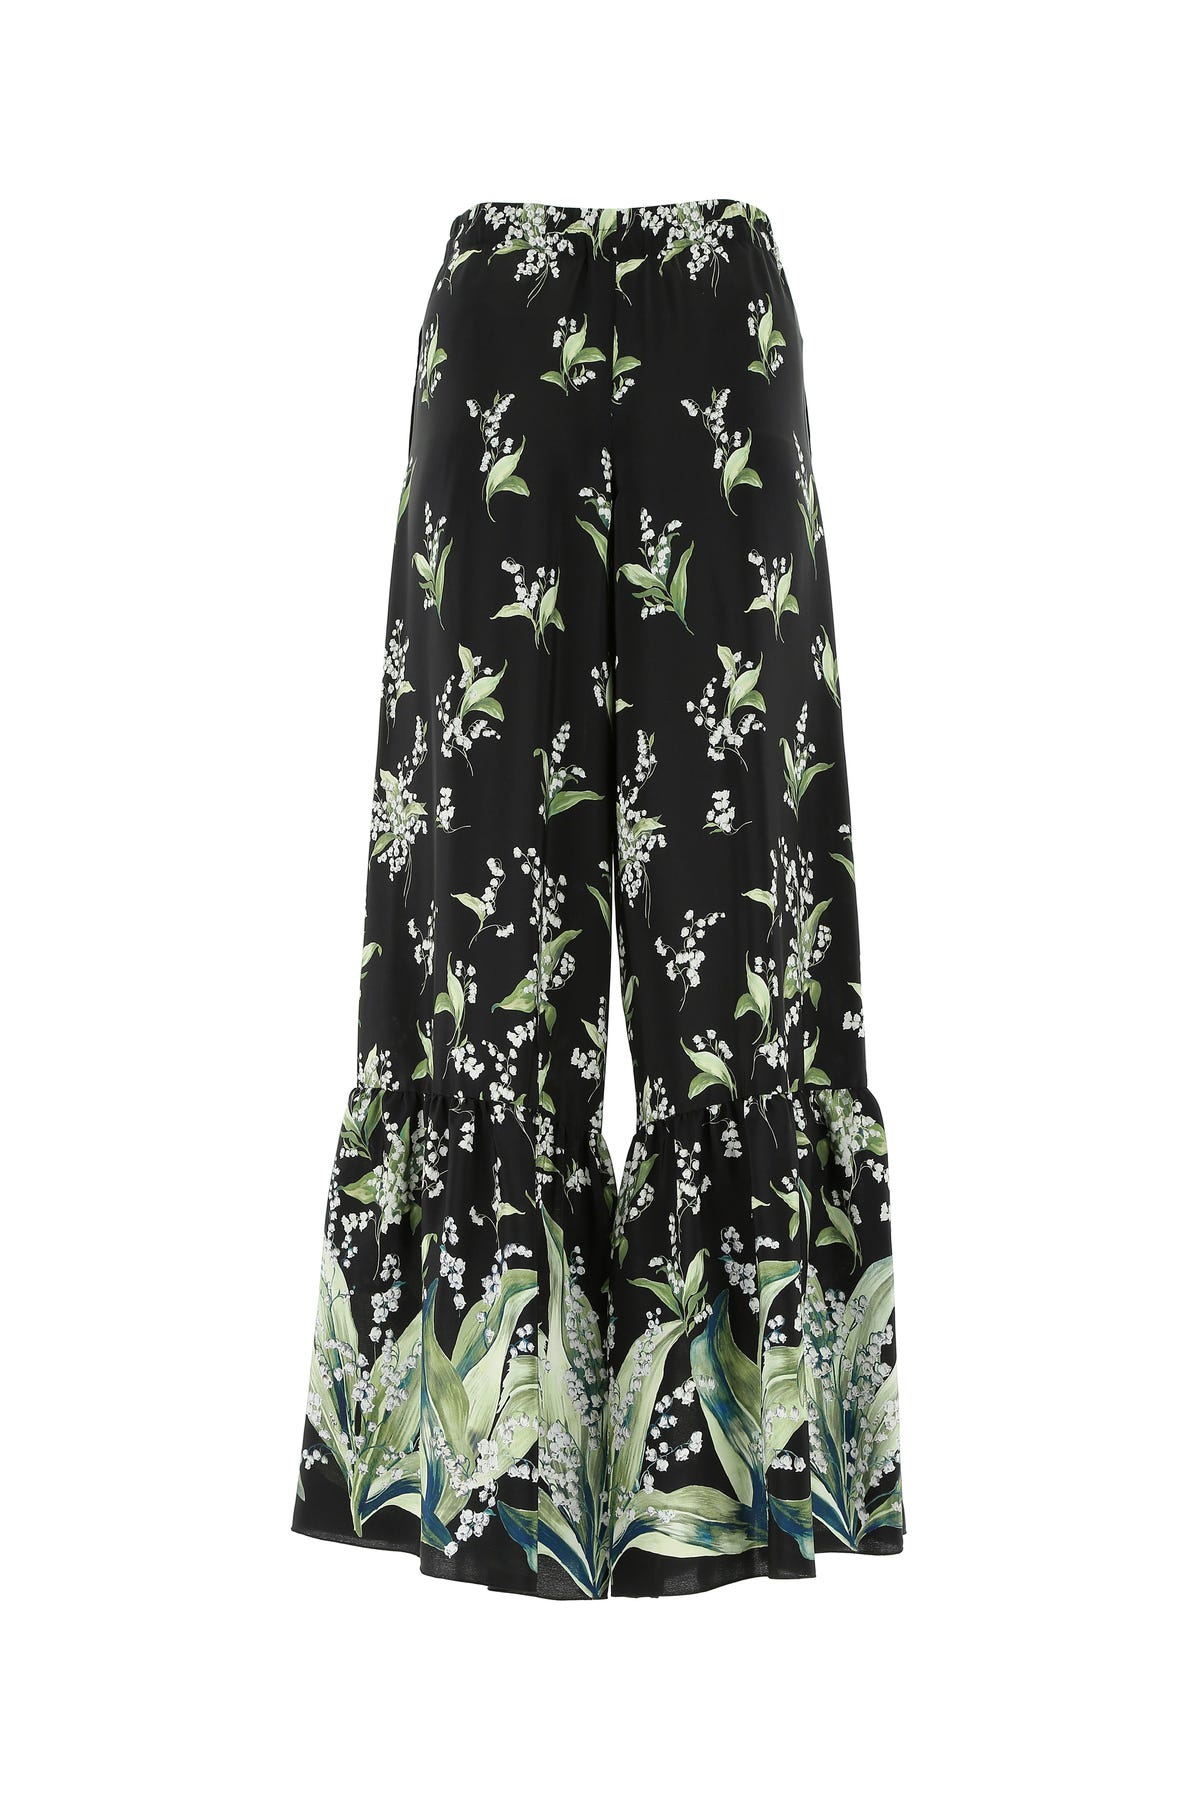 RED VALENTINO Silks PANTALONE-46